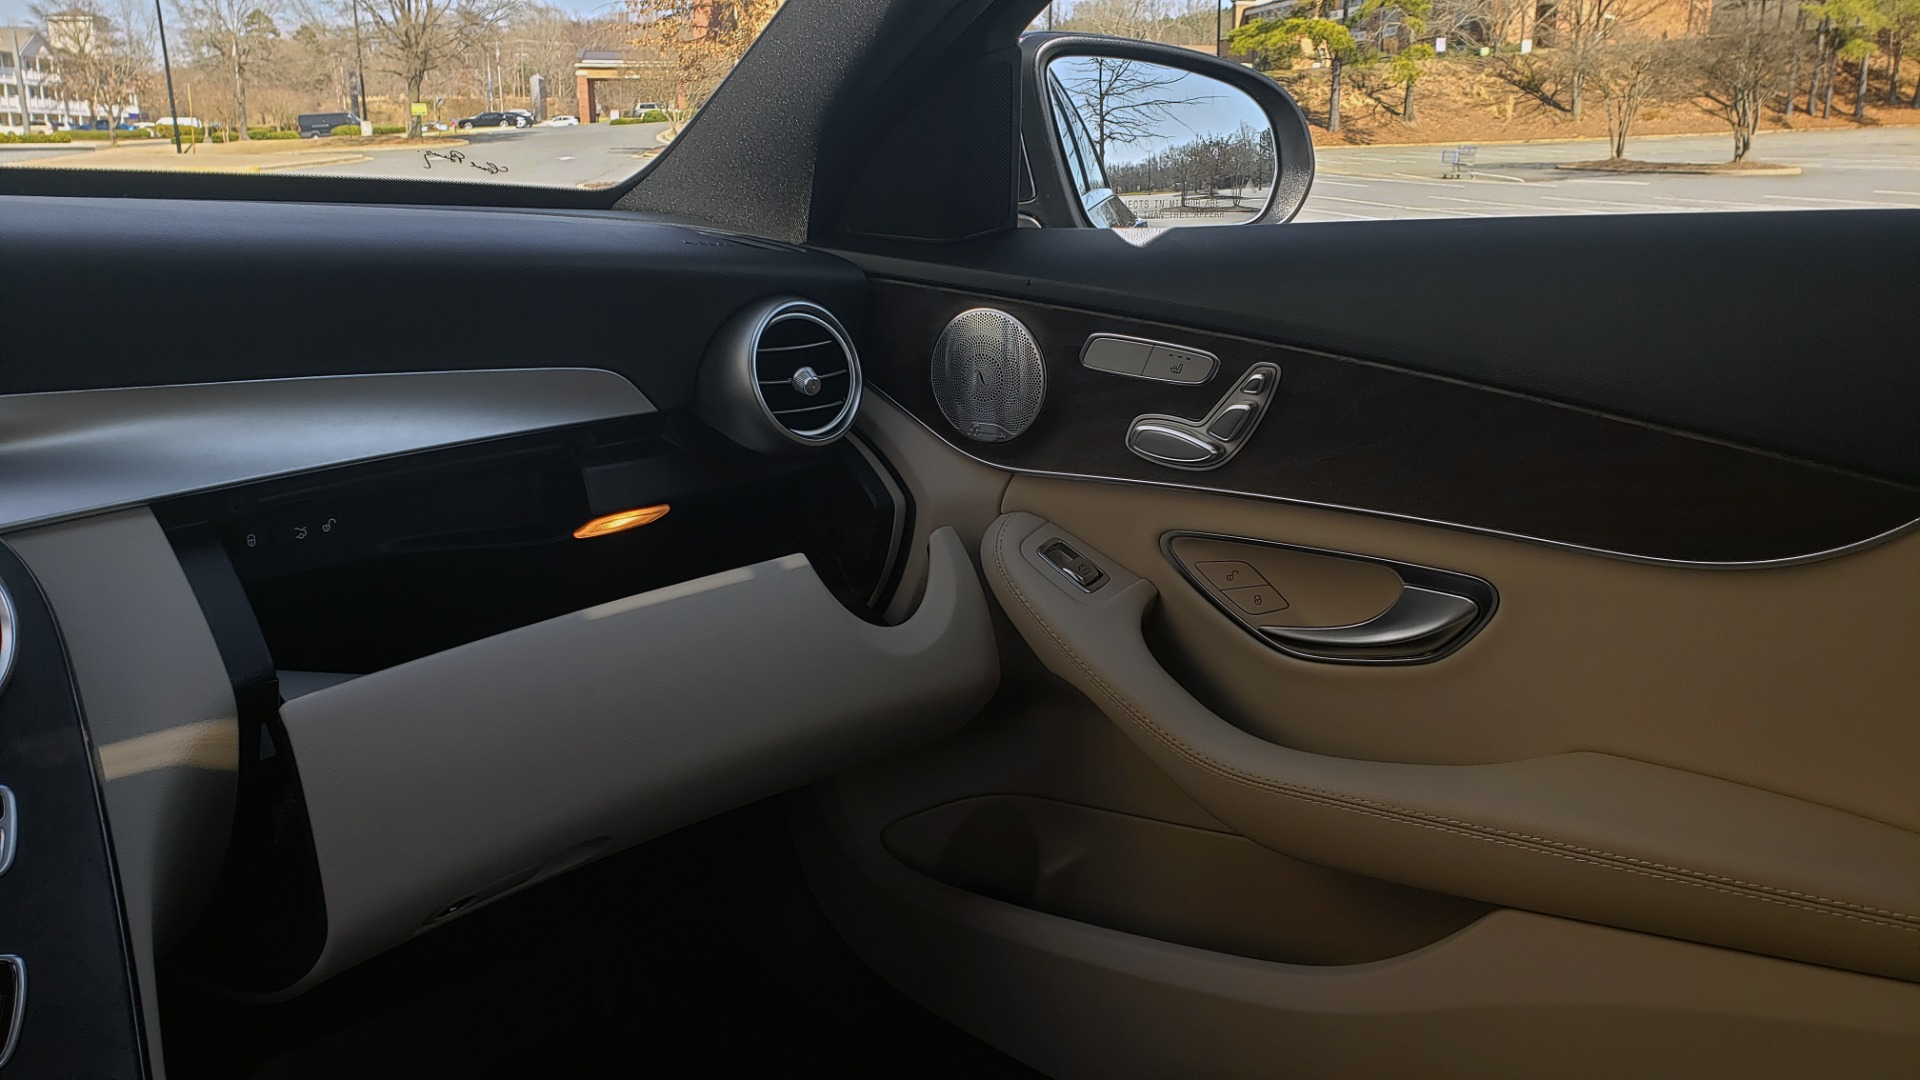 Used 2018 Mercedes-Benz C-CLASS C 300 PREMIUM / SUNROOF / BURMESTER / BSM / REARVIEW for sale $23,995 at Formula Imports in Charlotte NC 28227 44